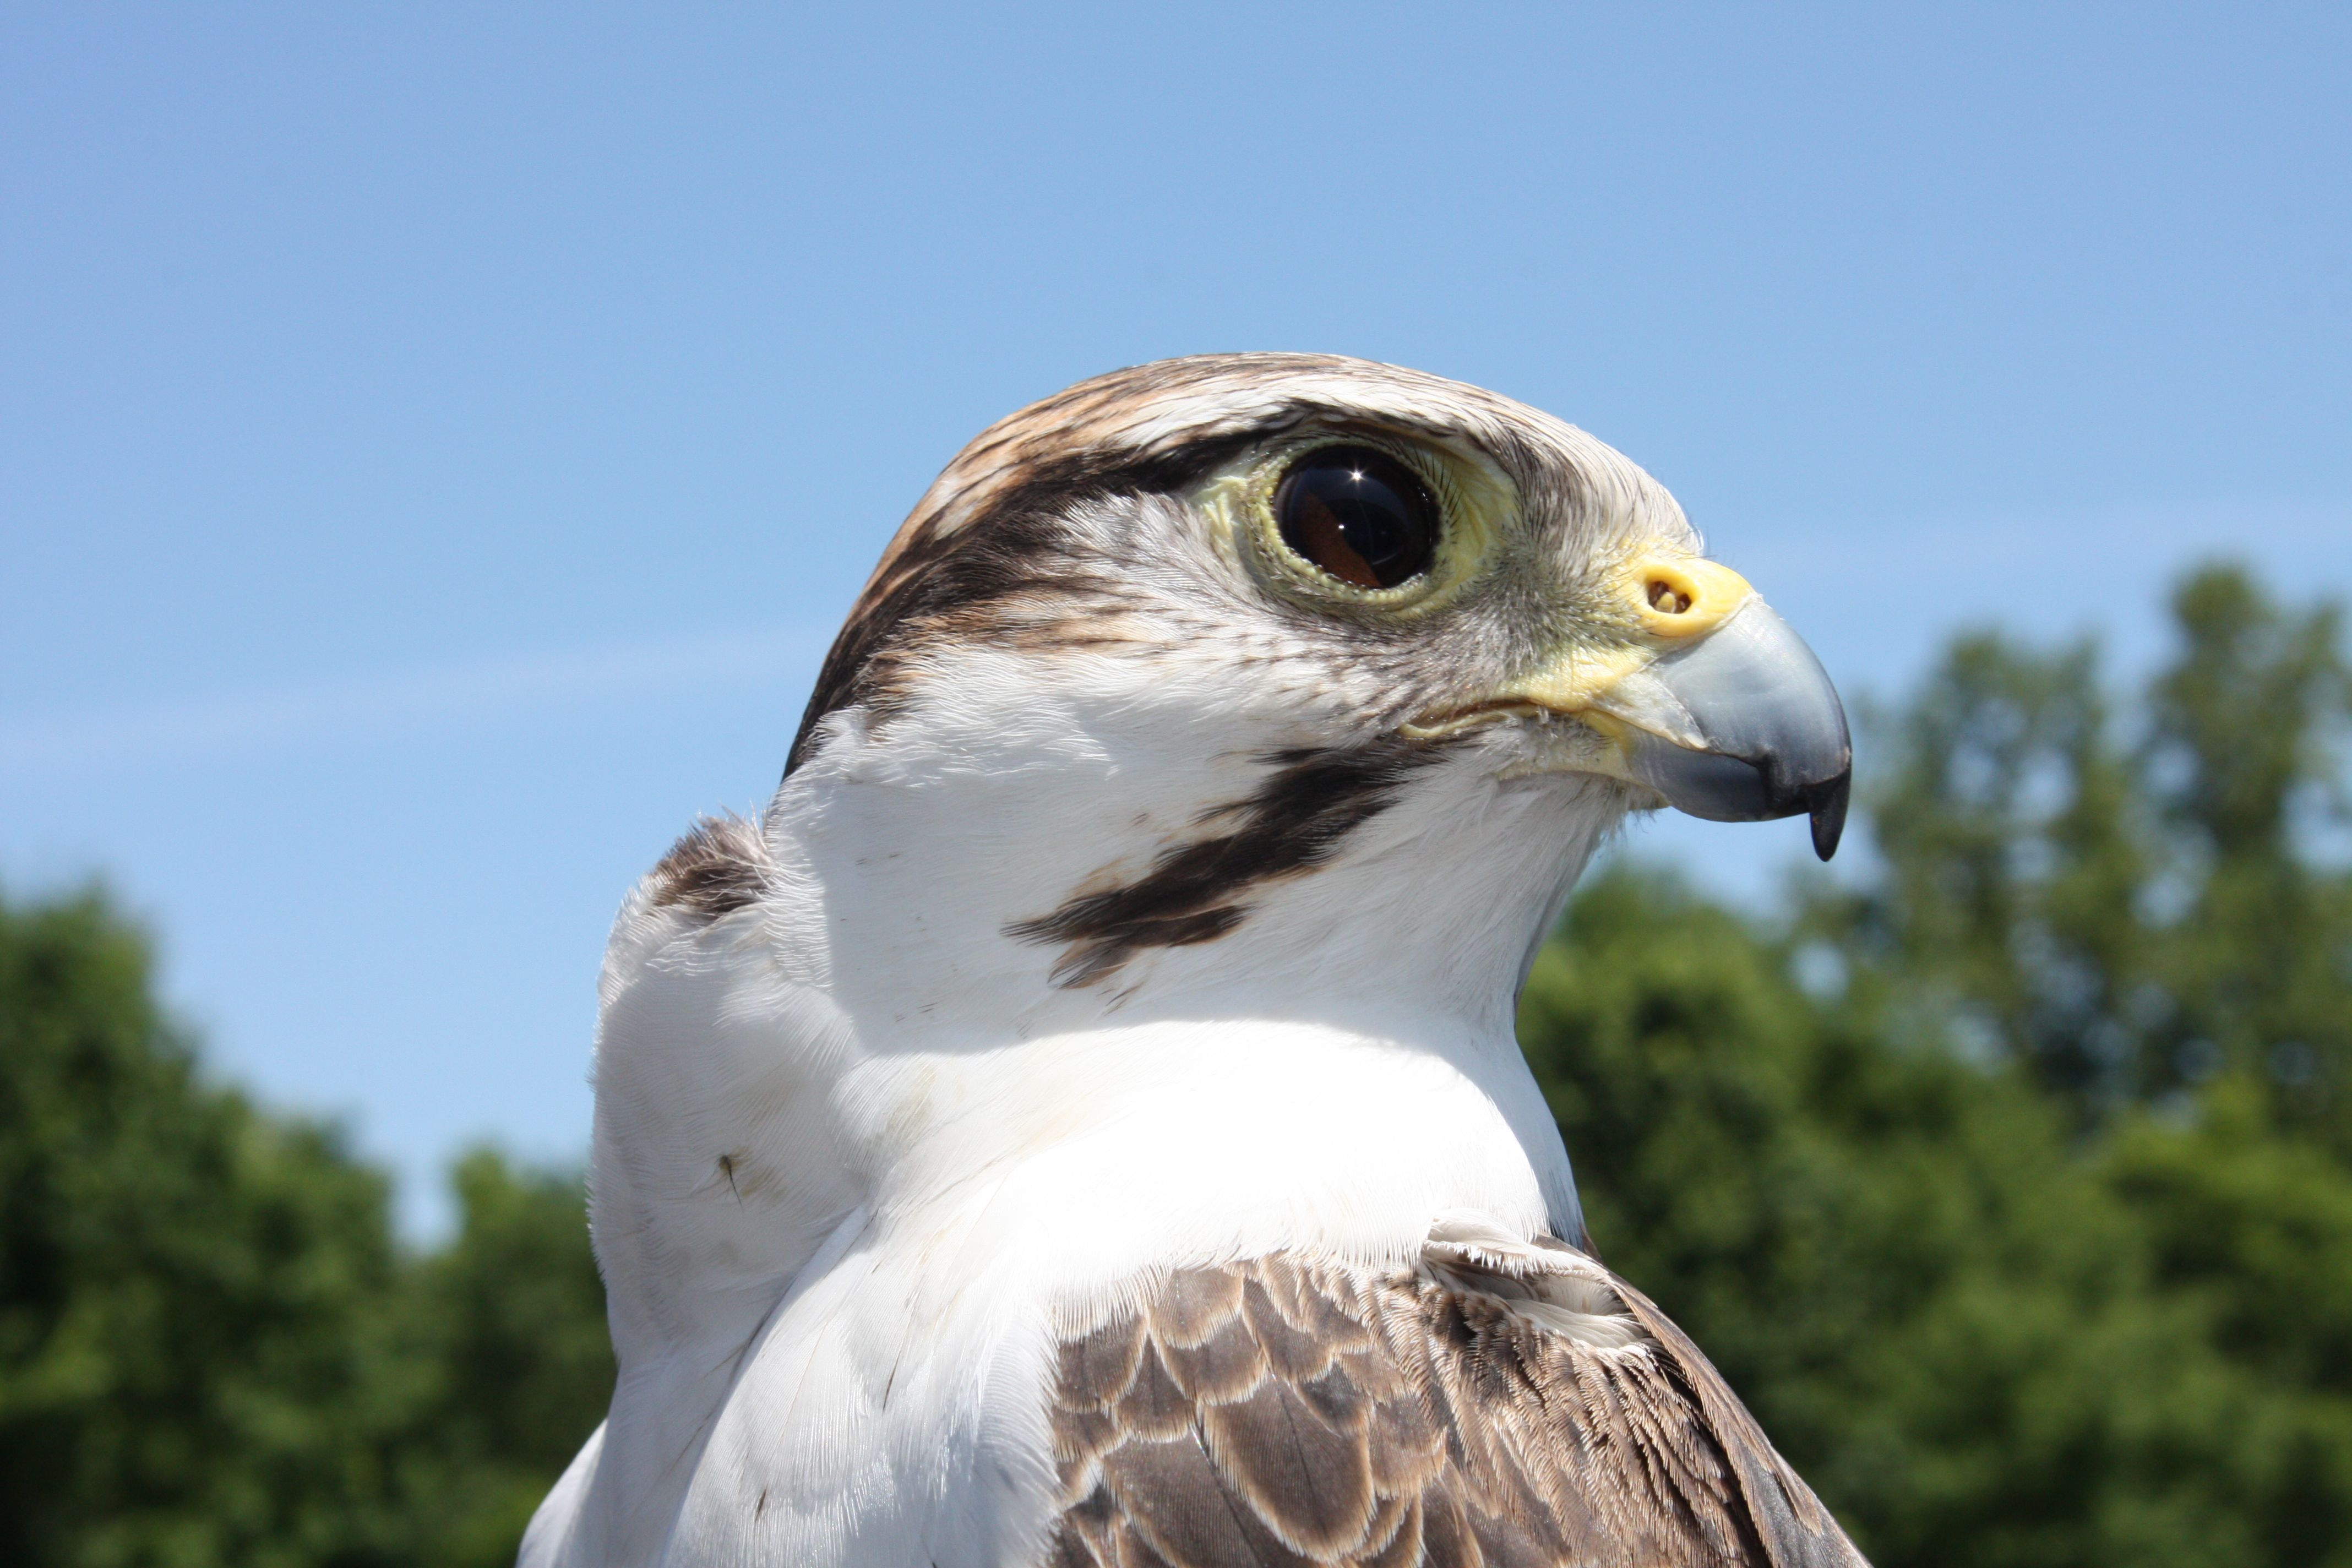 Lagger Falcon From Http Www Salthaven Org On Uwo Campus Bird Photo Animals Eagles